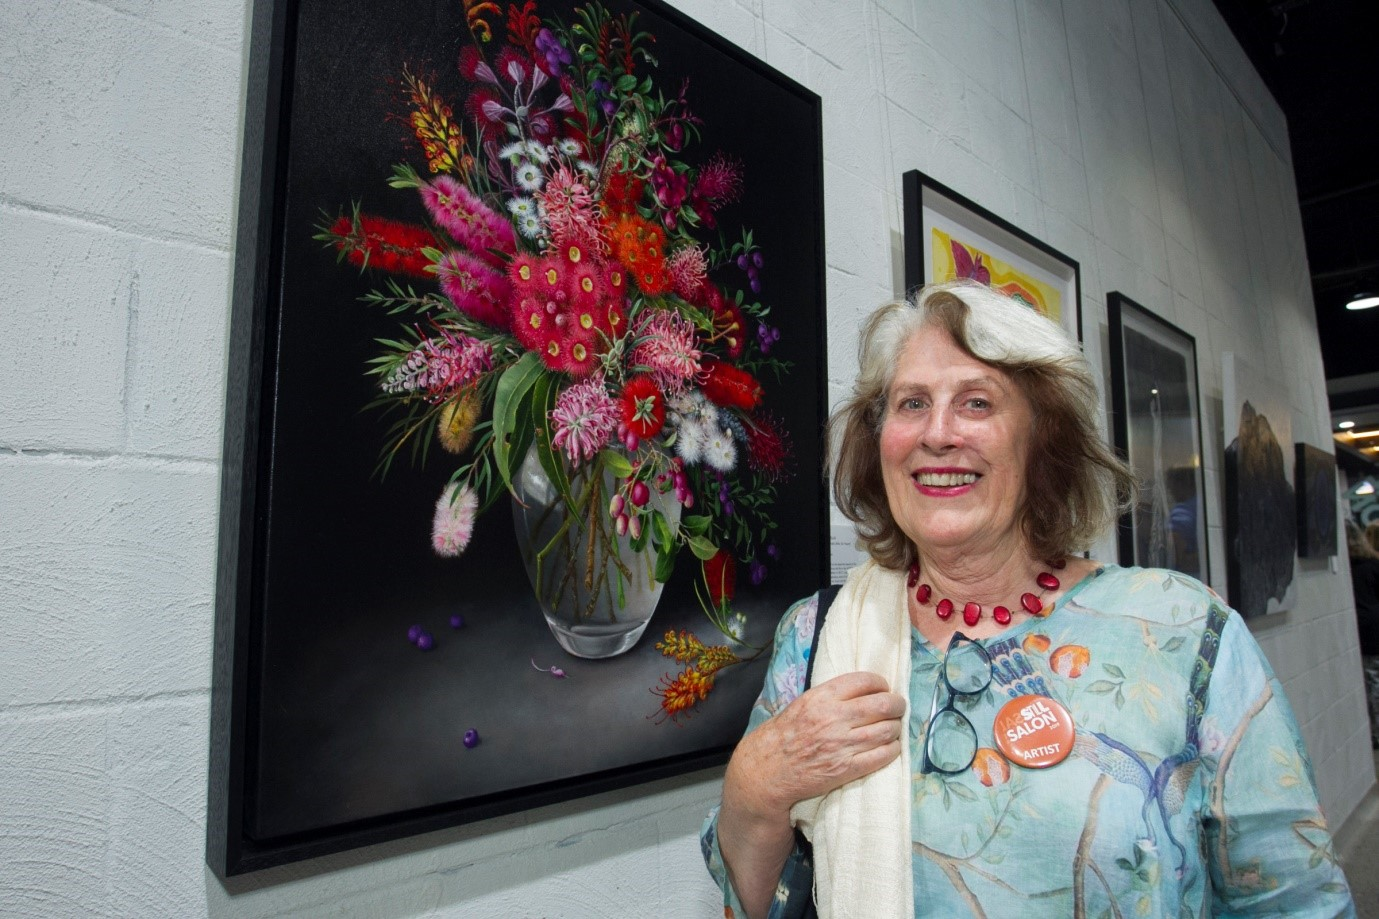 Polly Wells with her People's Choice winning entry 'Flora Australis (After De Heem)'